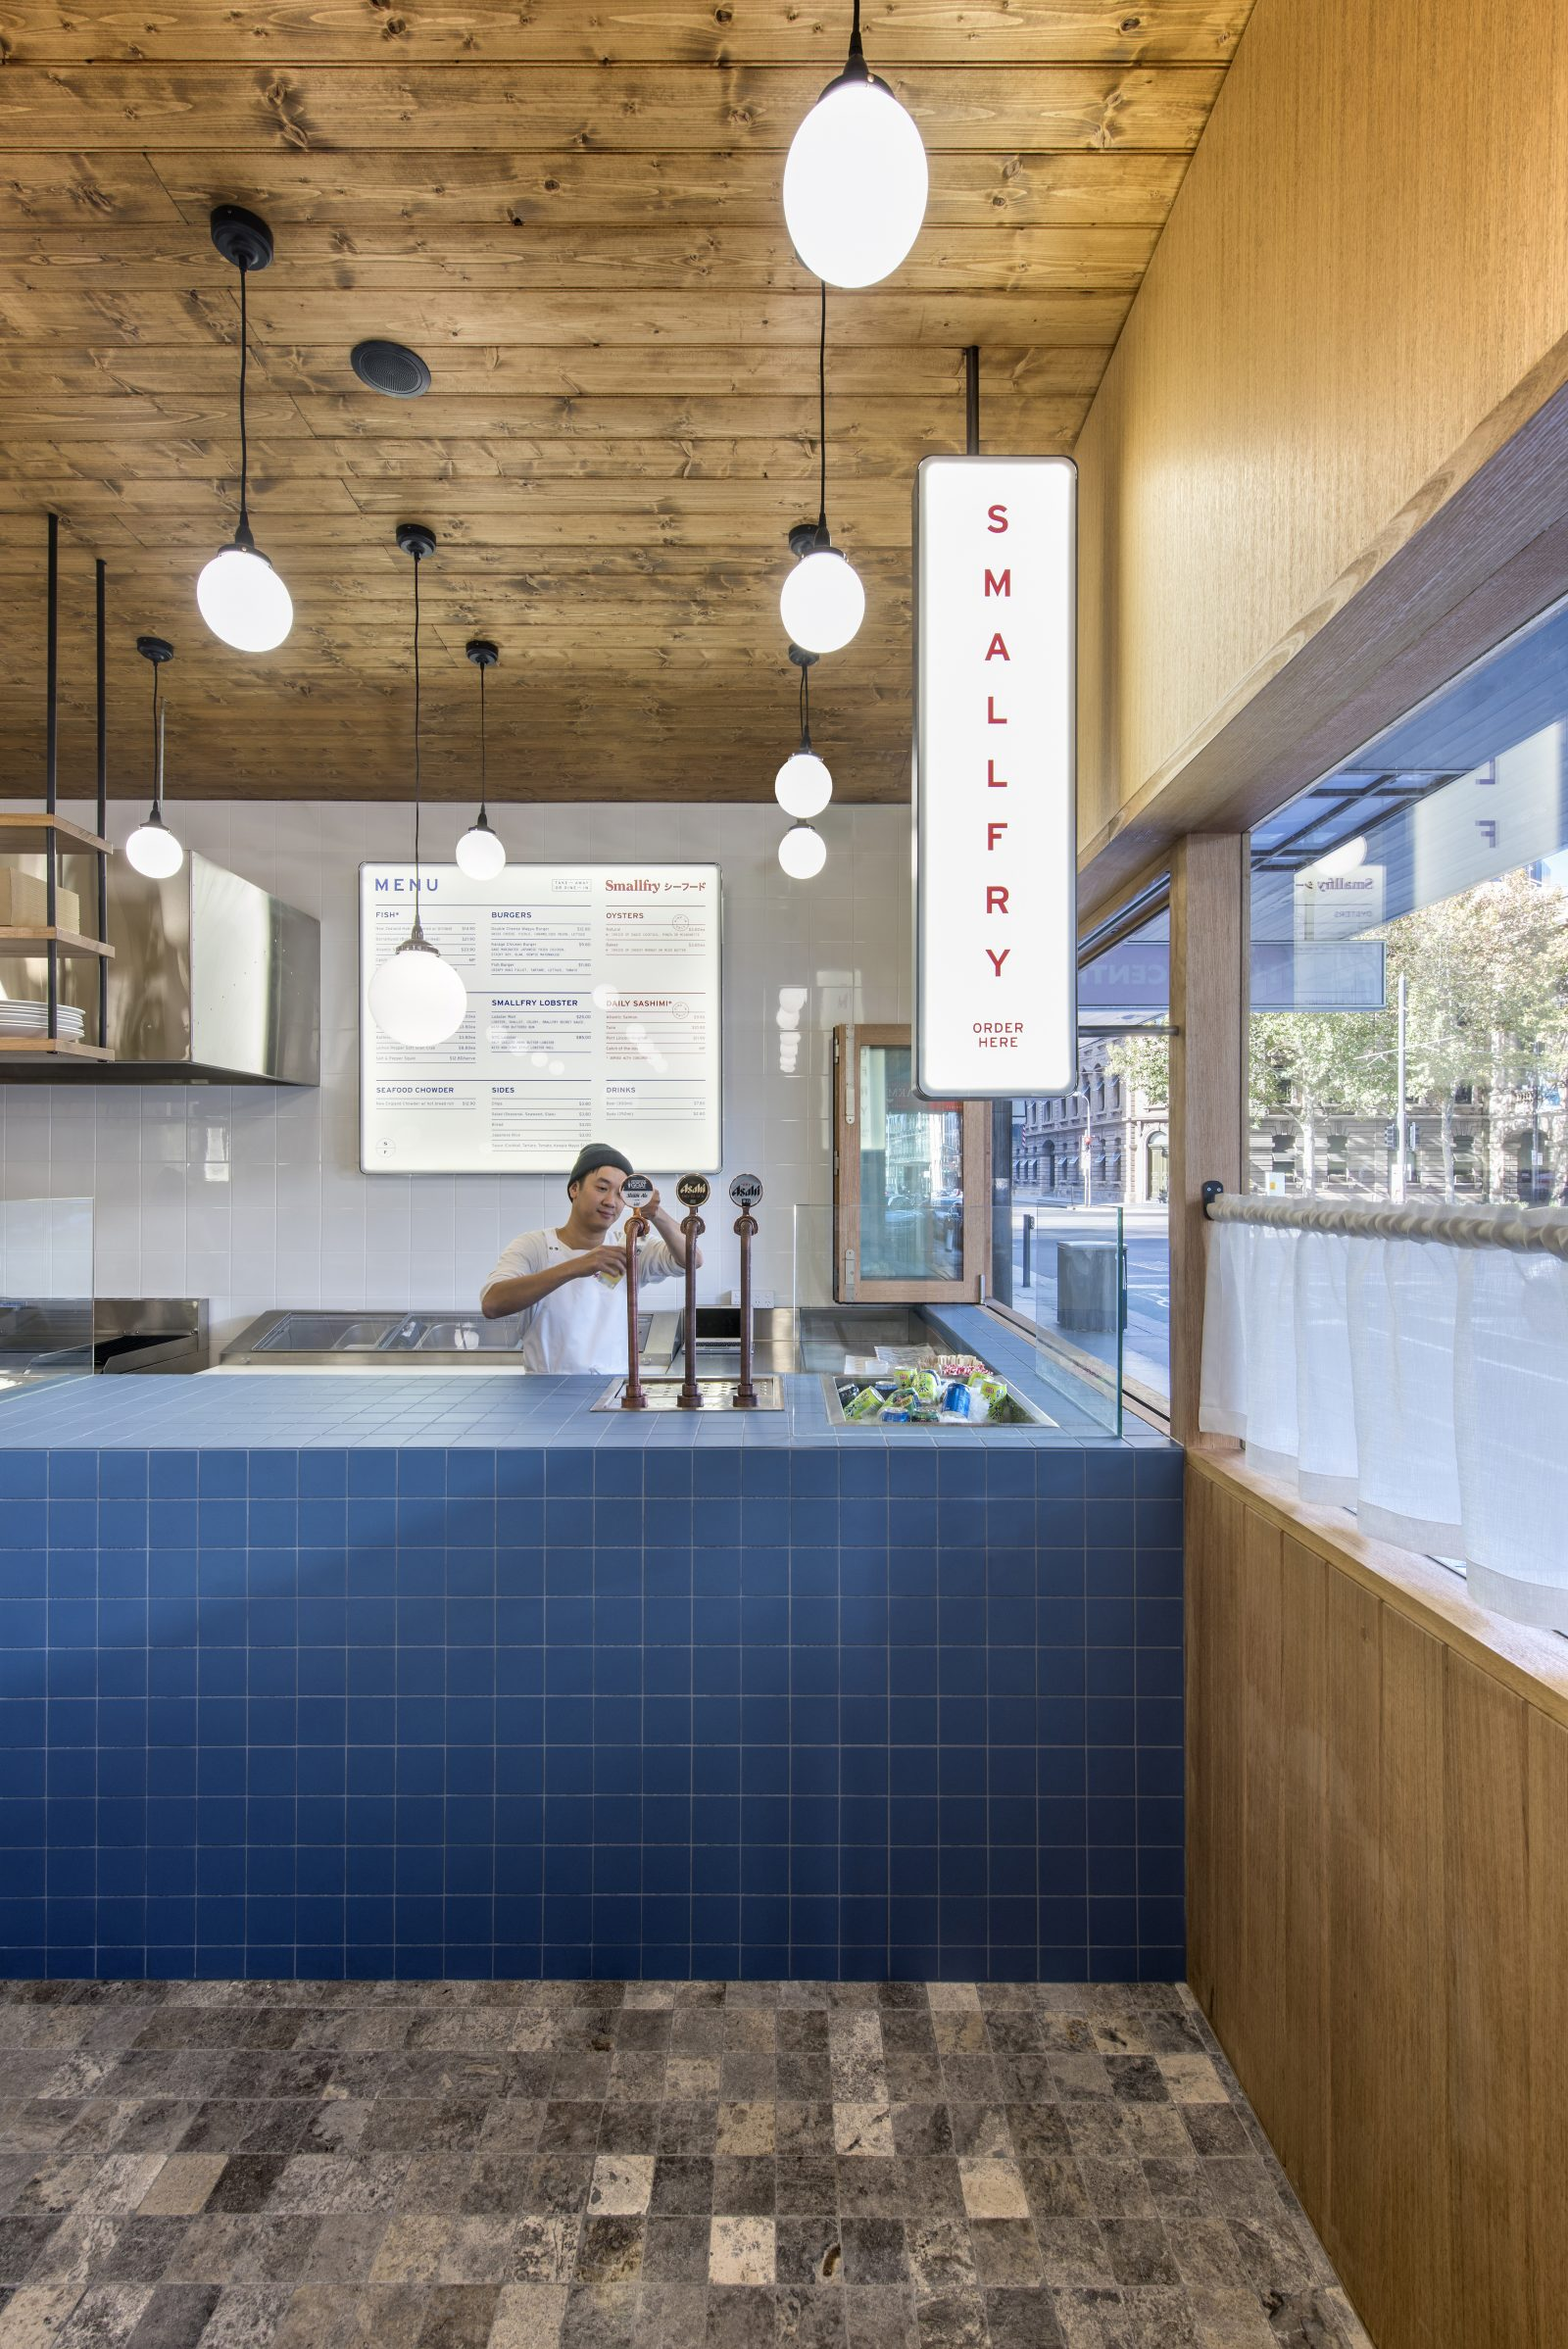 Smallfry by Sans Arc Studio - Interior Archive - Australian Architecture - The Local Project - Image 8